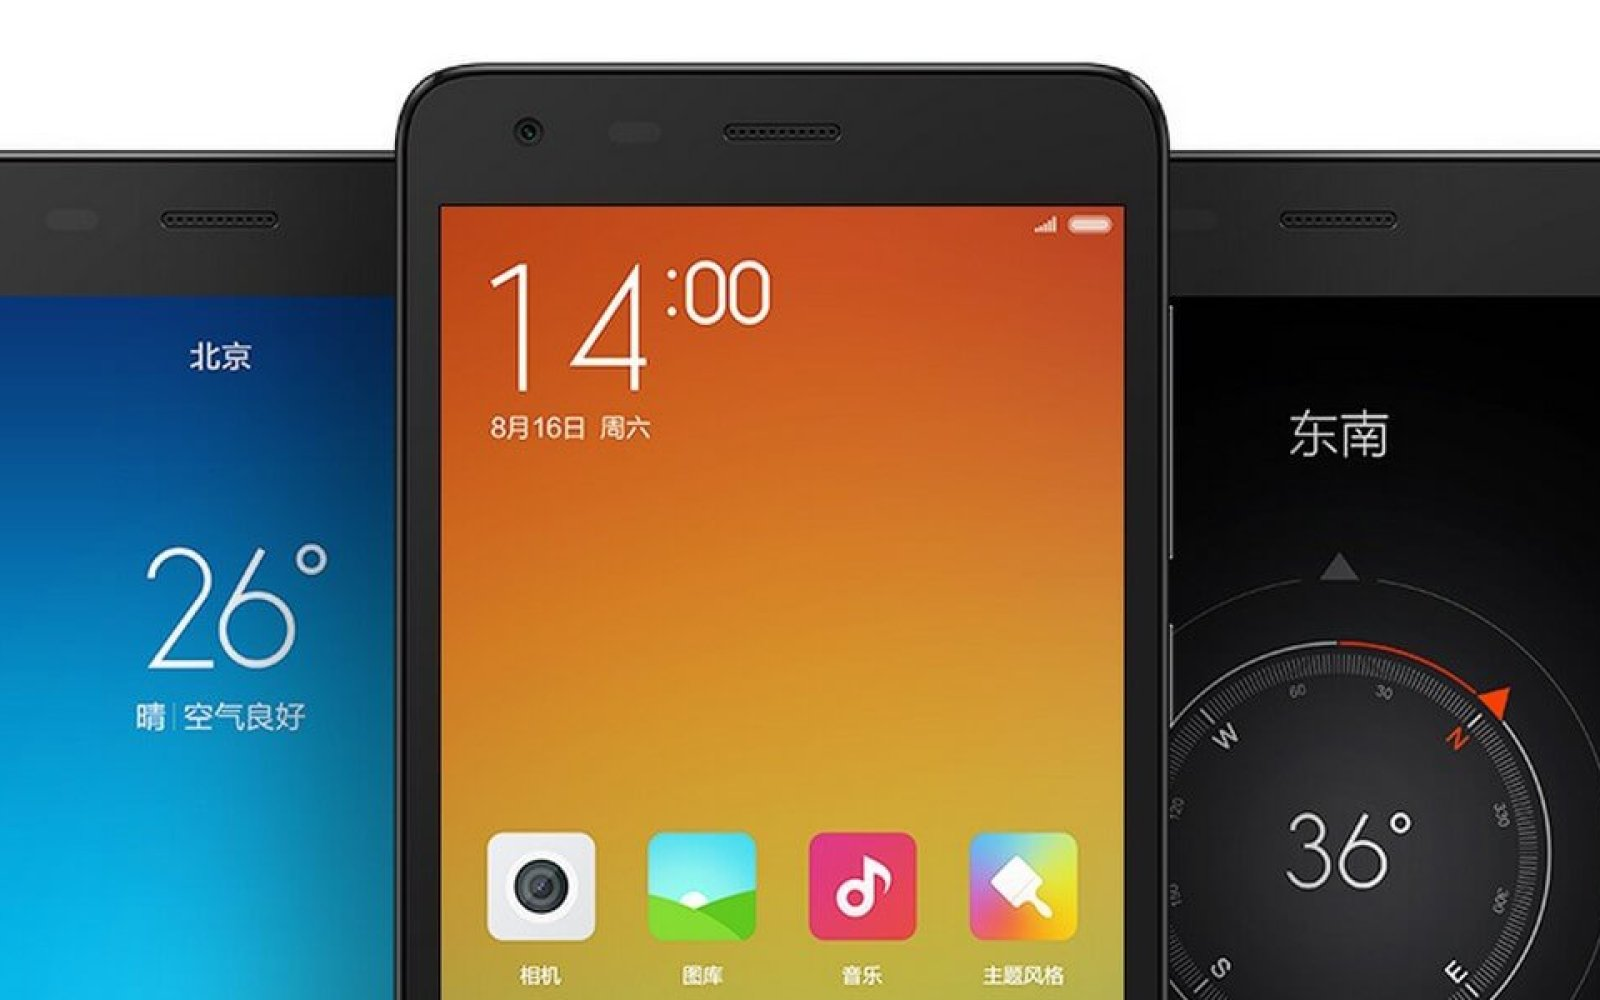 Xiaomi's Redmi 2 Pro hits the FCC as the Chinese phone maker continues eyeing the US